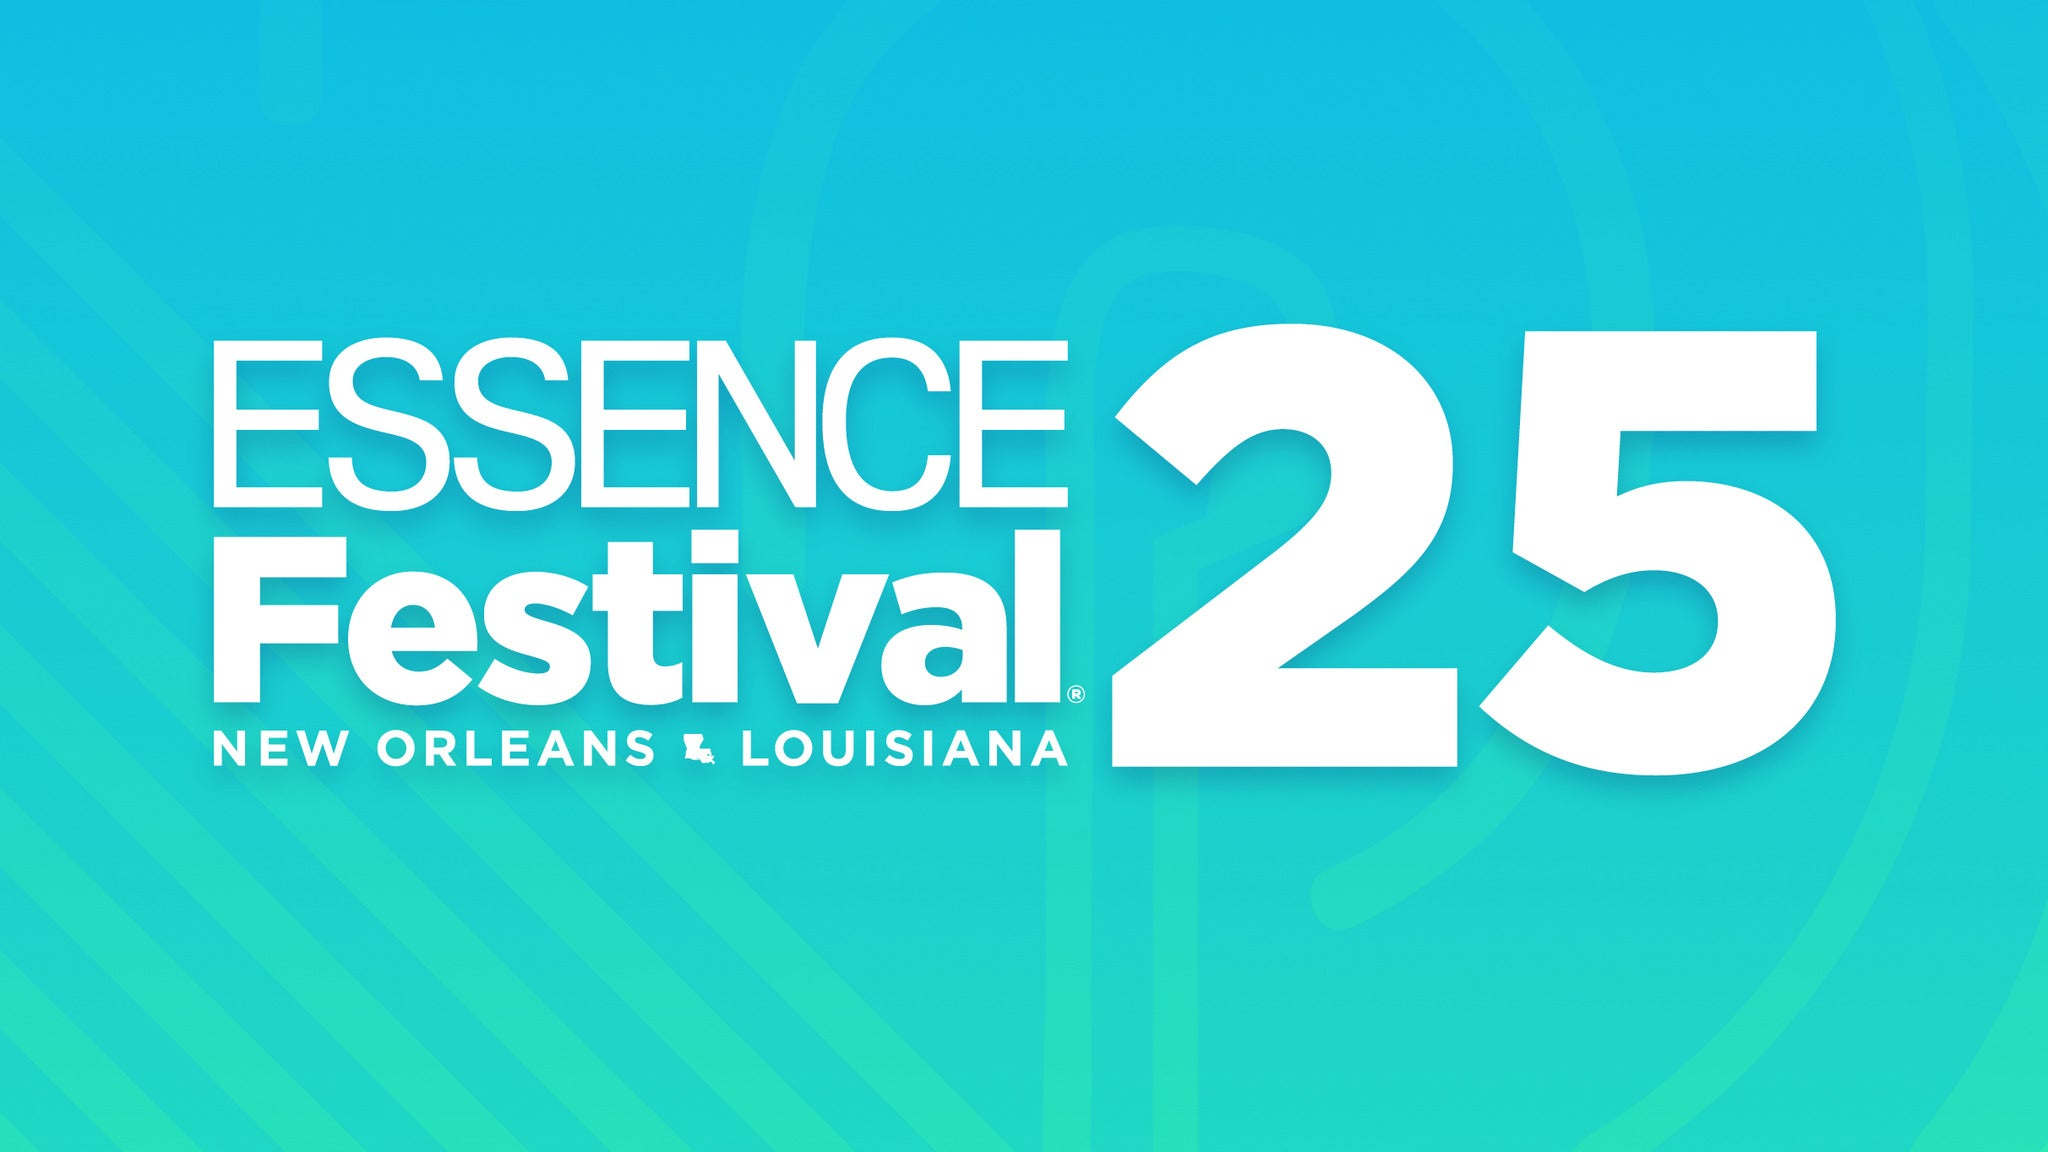 2019 Essence Festival * Friday at Mercedes-Benz Superdome